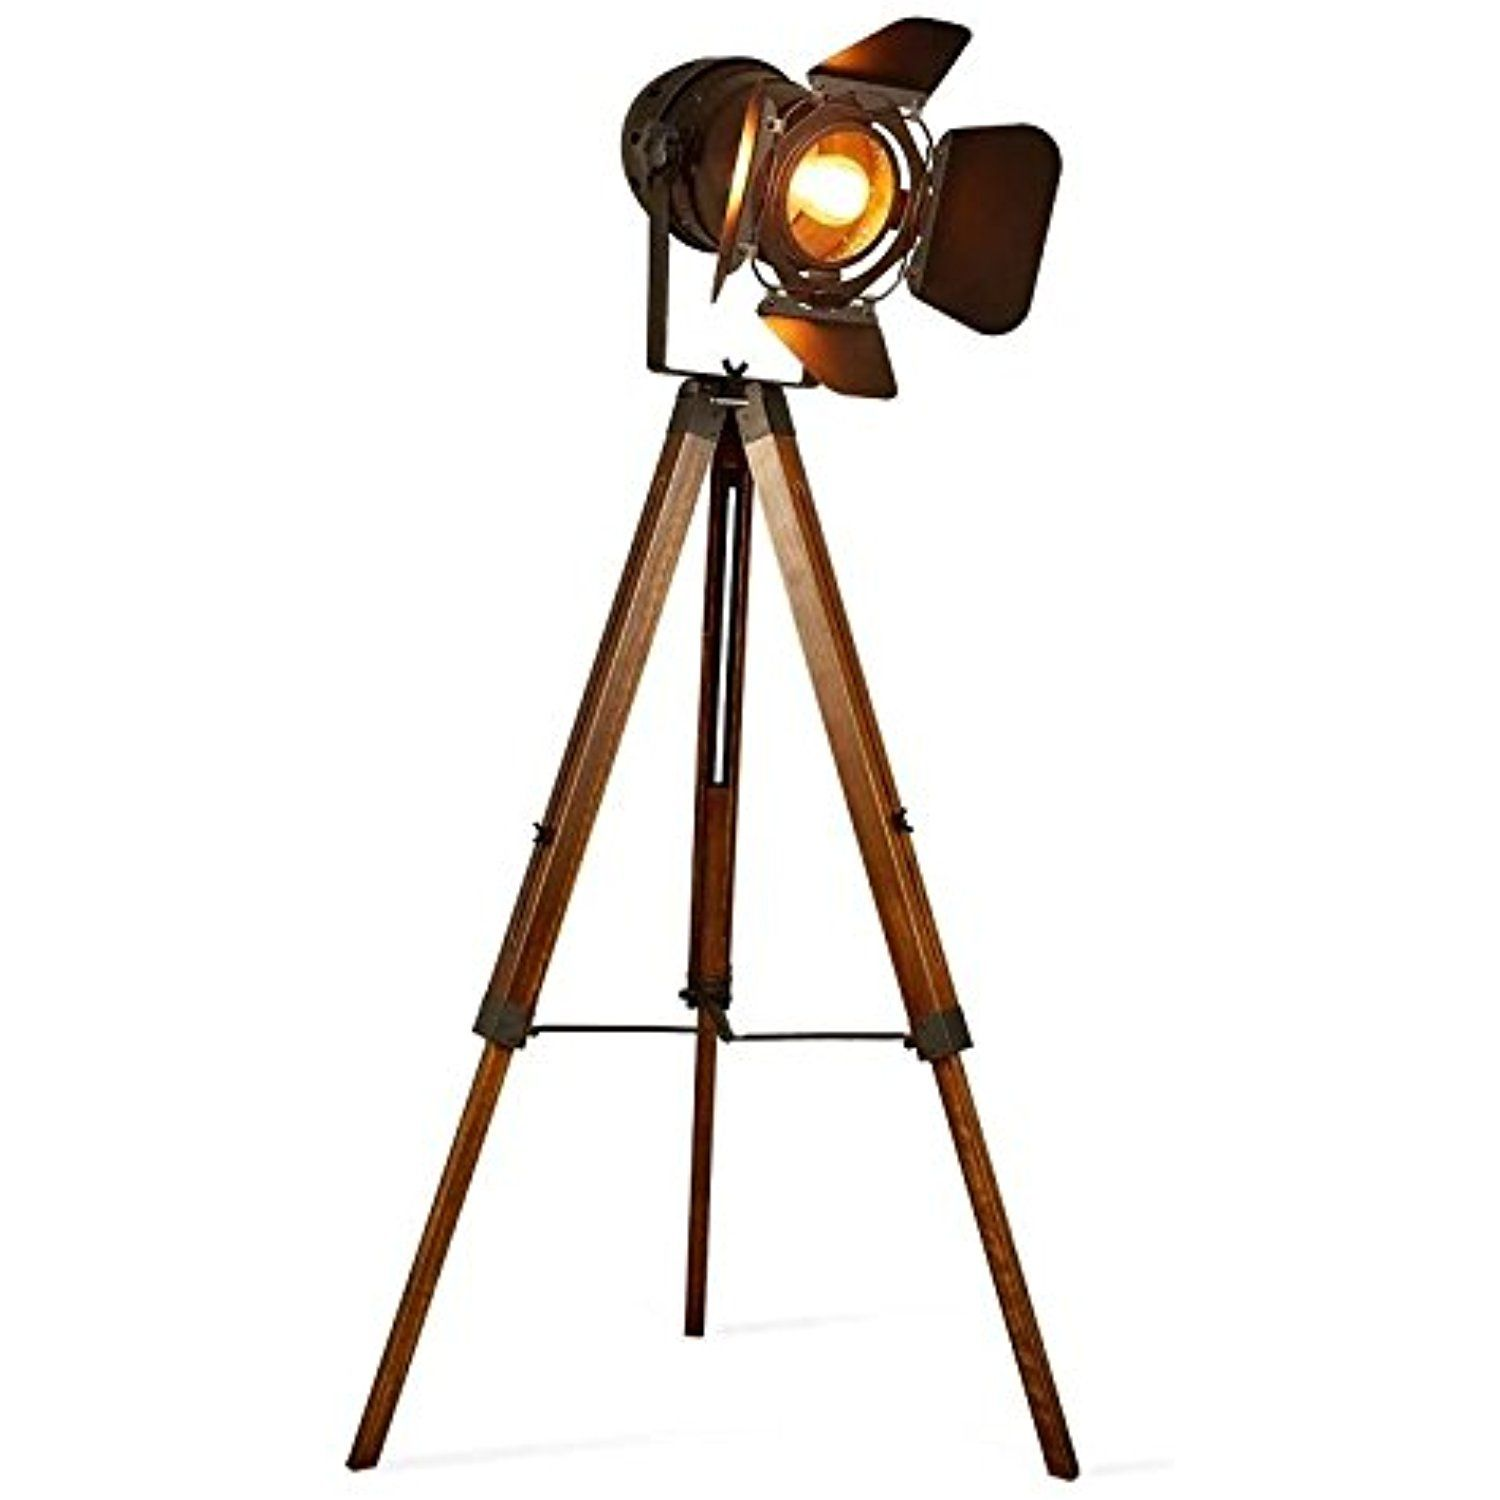 Decoluce Vintage Tripod Floor Desk Lamp Nautical Teatre Retro Spotlight Industrial Decor Wooden Lig Tripod Floor Lamps Wooden Light Fixtures Vintage Floor Lamp